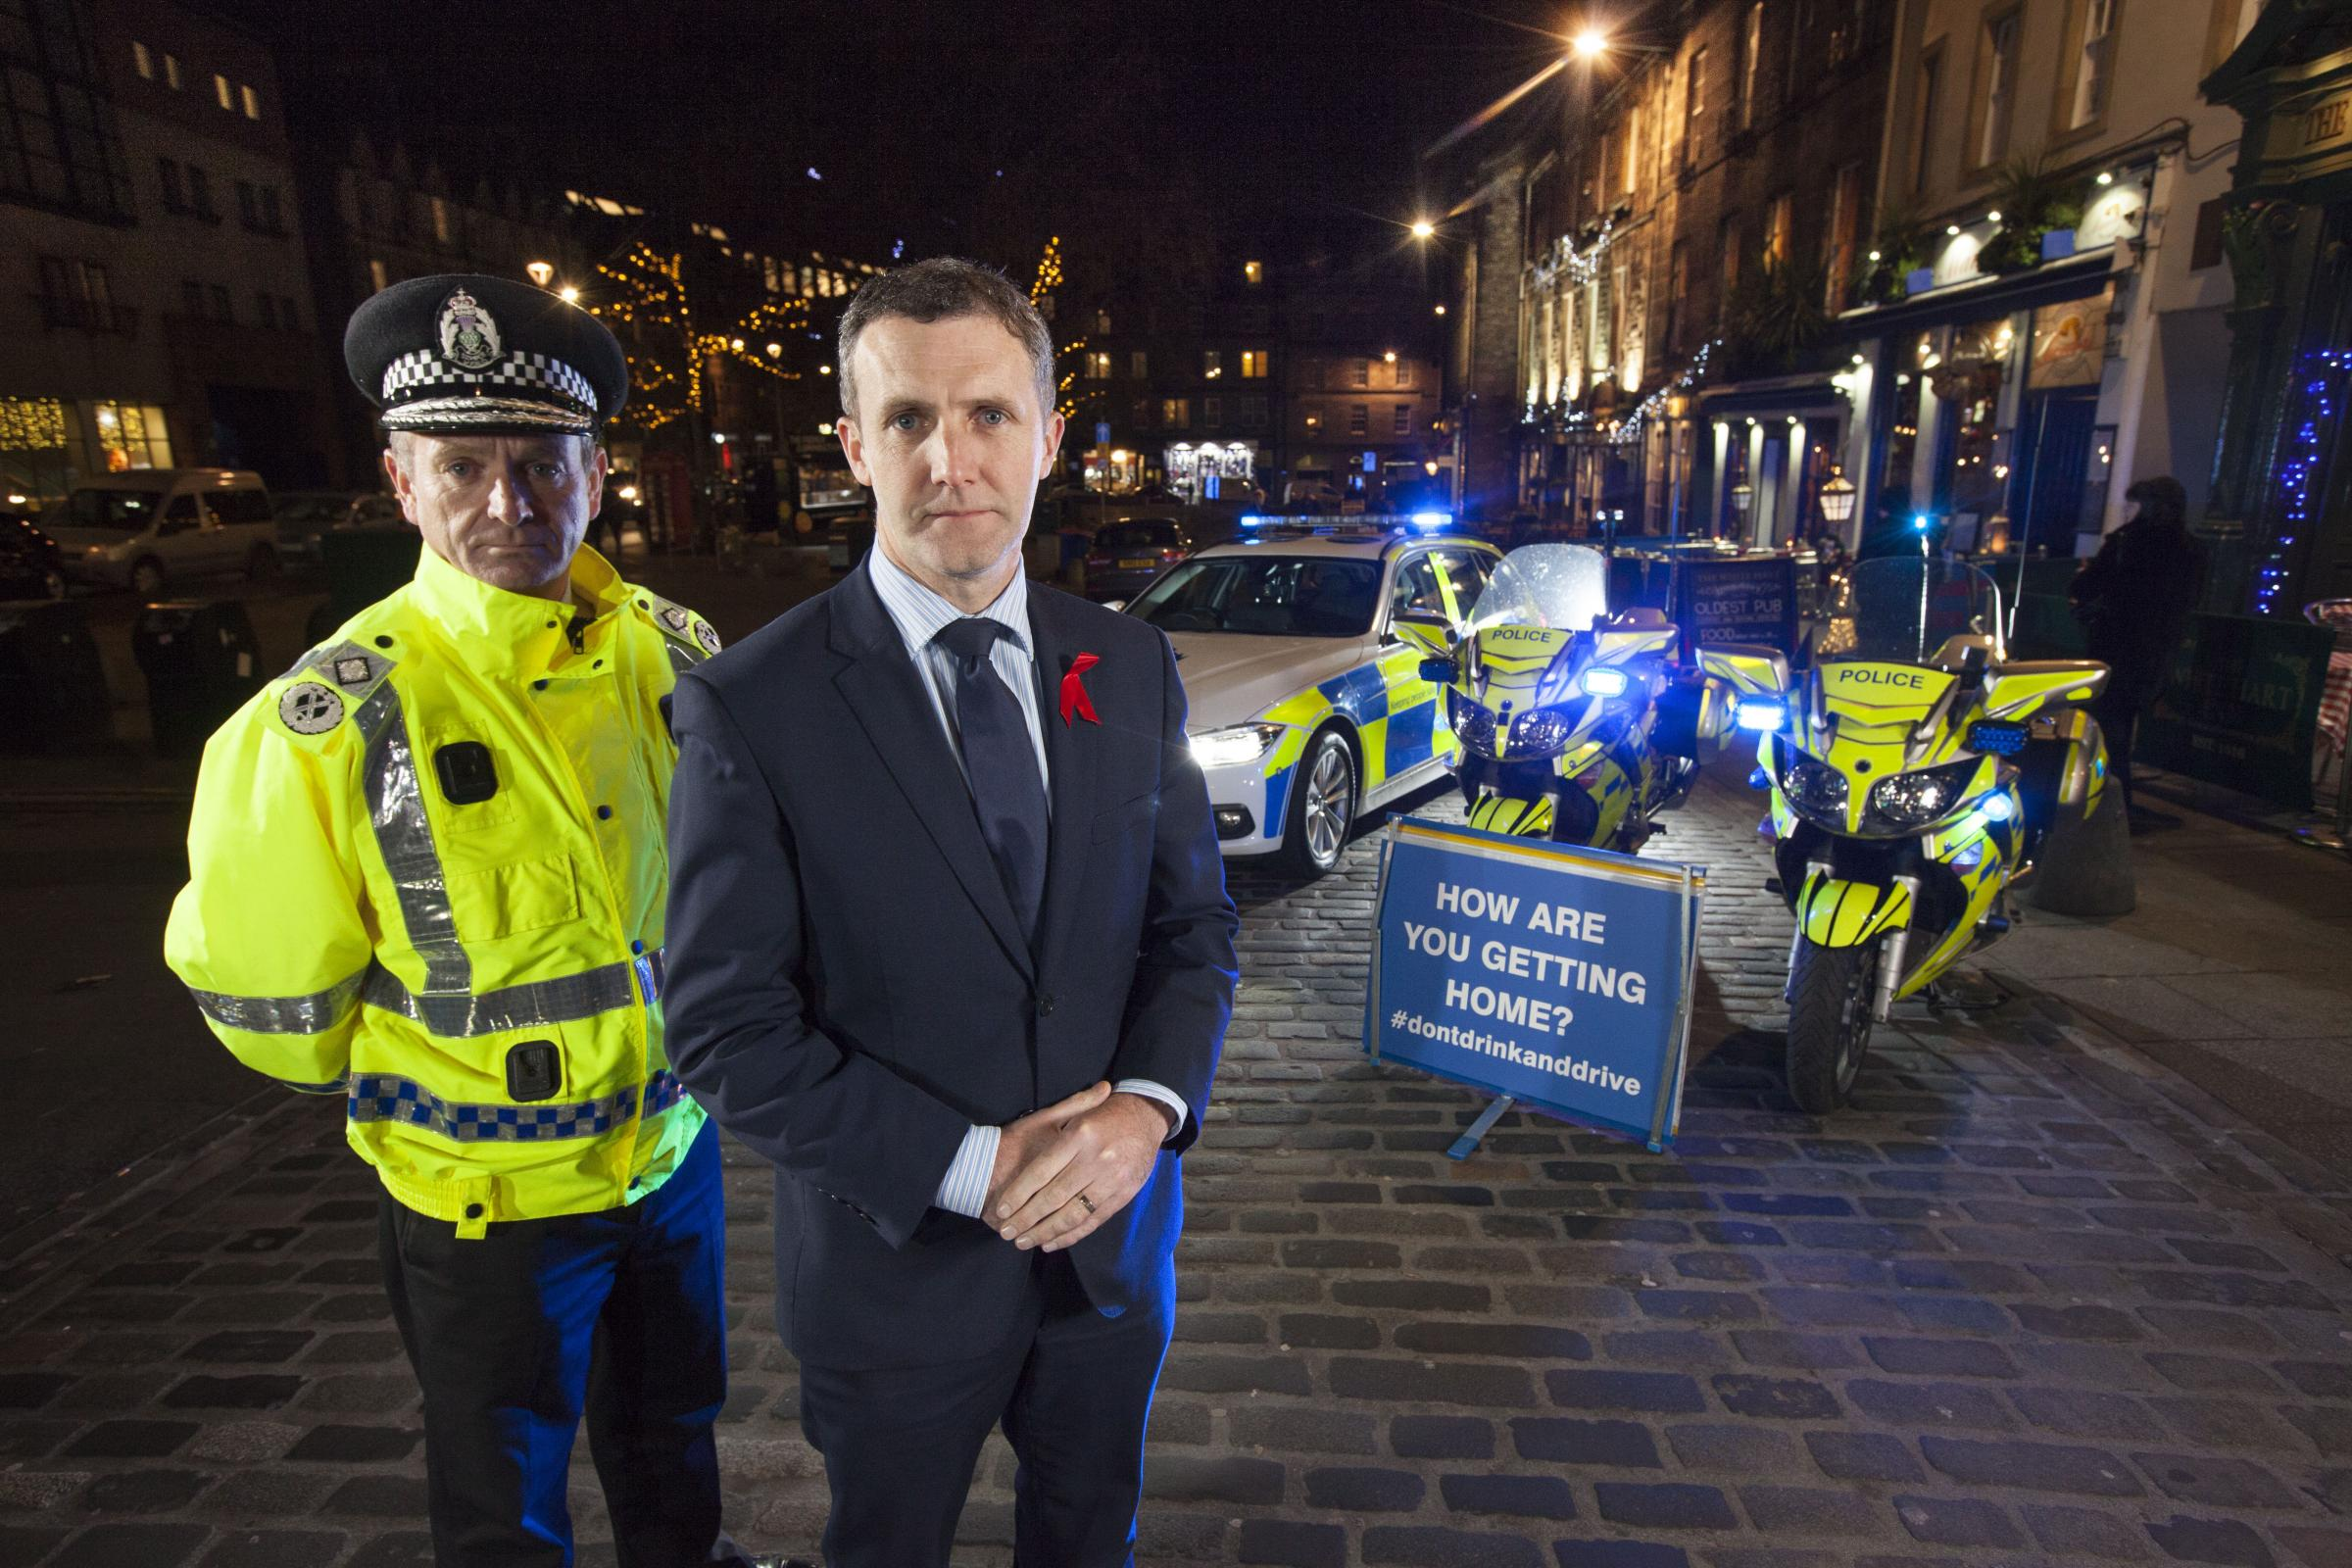 Justice Secretary Michael Matheson launched the Festive Drink Drive campaign in Edinburgh with Deputy Chief Constable Iain Livingstone. Photo: Chris James